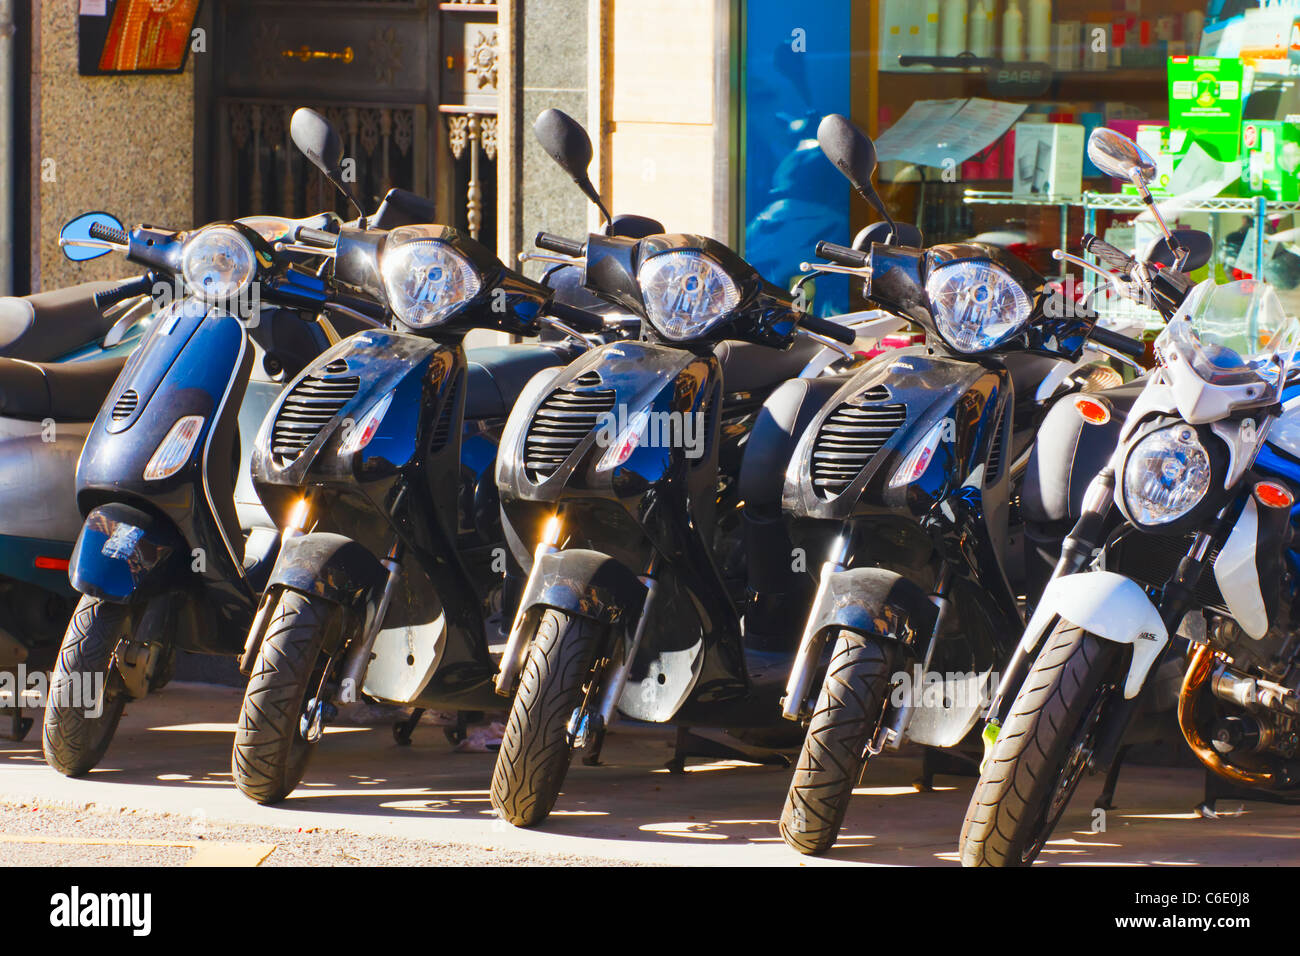 Motor bikes parked in Malaga, Malaga Province, Spain. - Stock Image